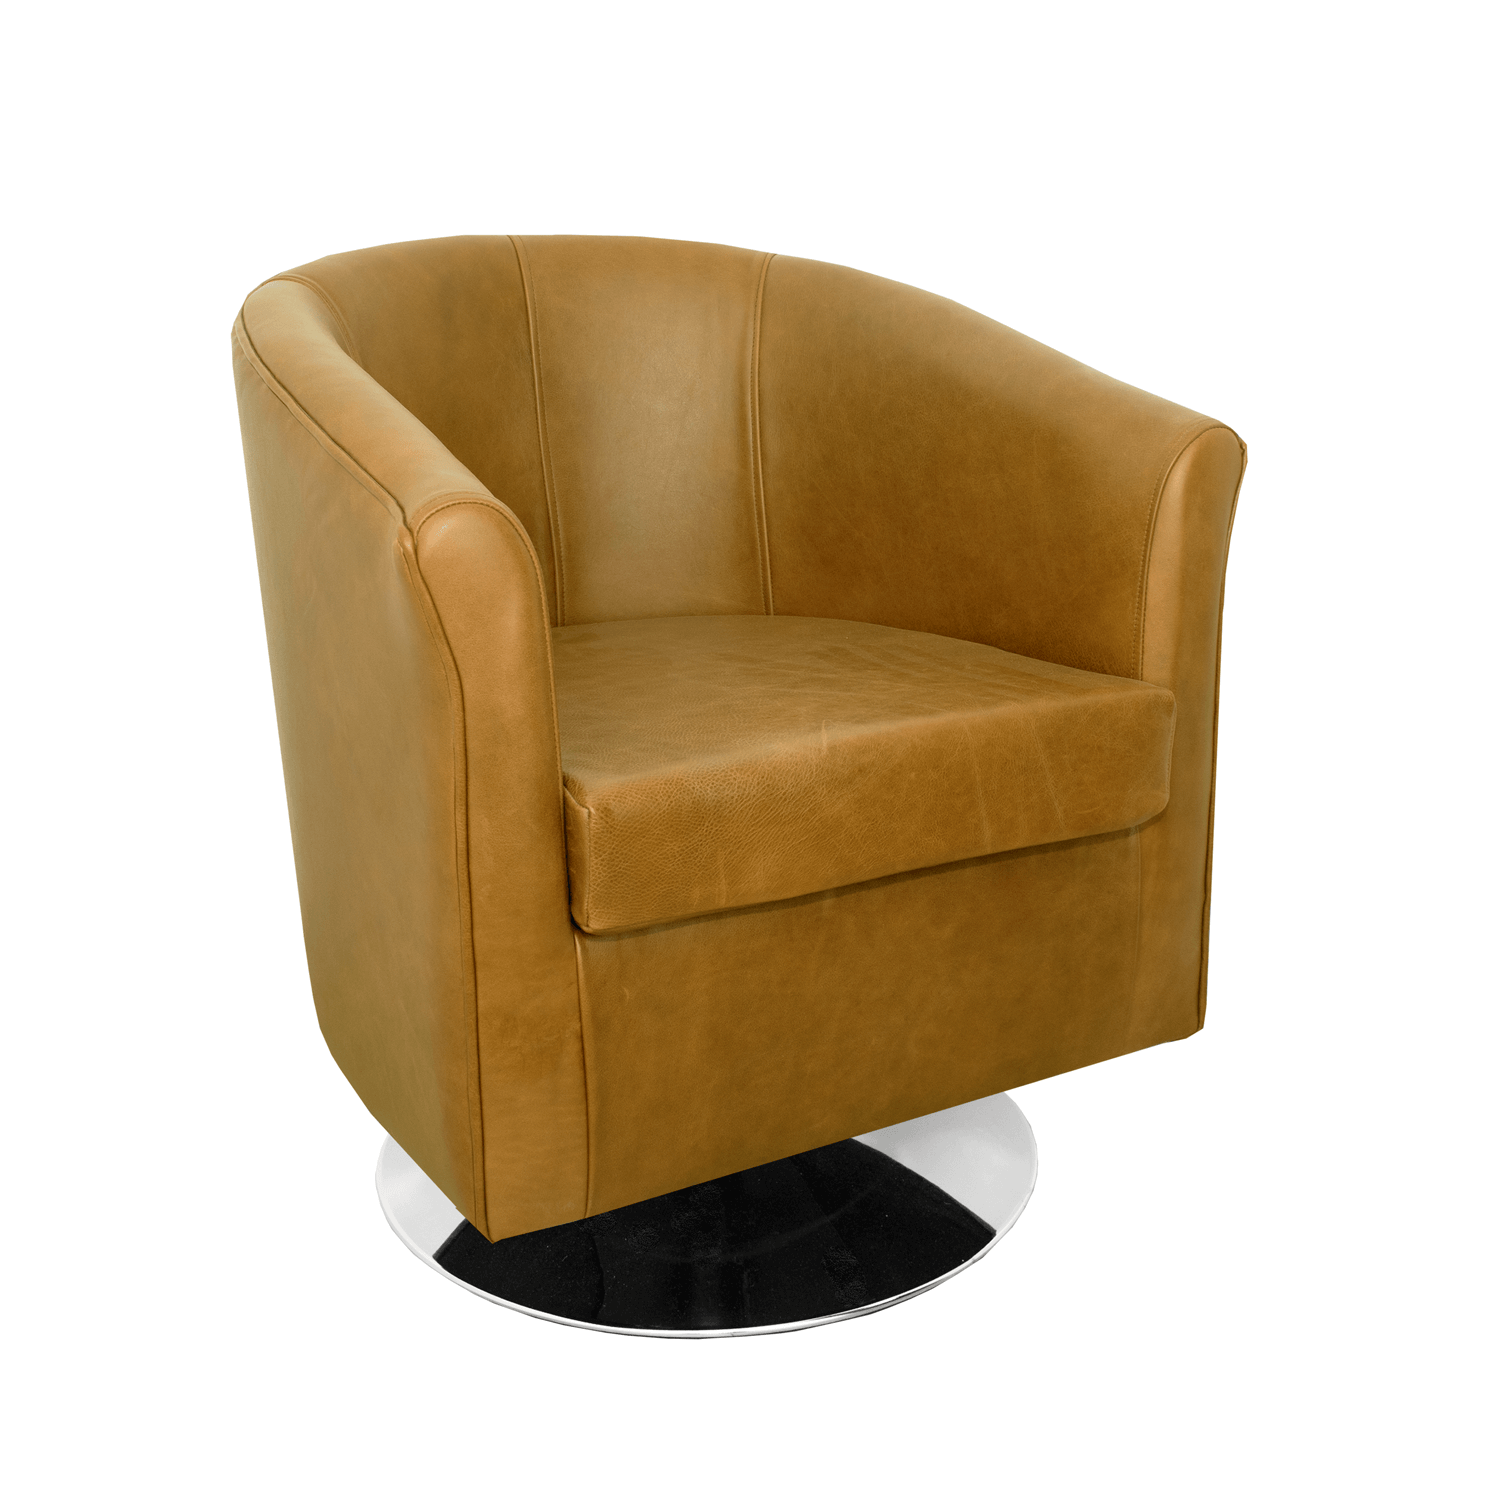 Fabulous Tuscany Genuine Leather Swivel Tub Chair In Crib 5 Mustang Squirreltailoven Fun Painted Chair Ideas Images Squirreltailovenorg